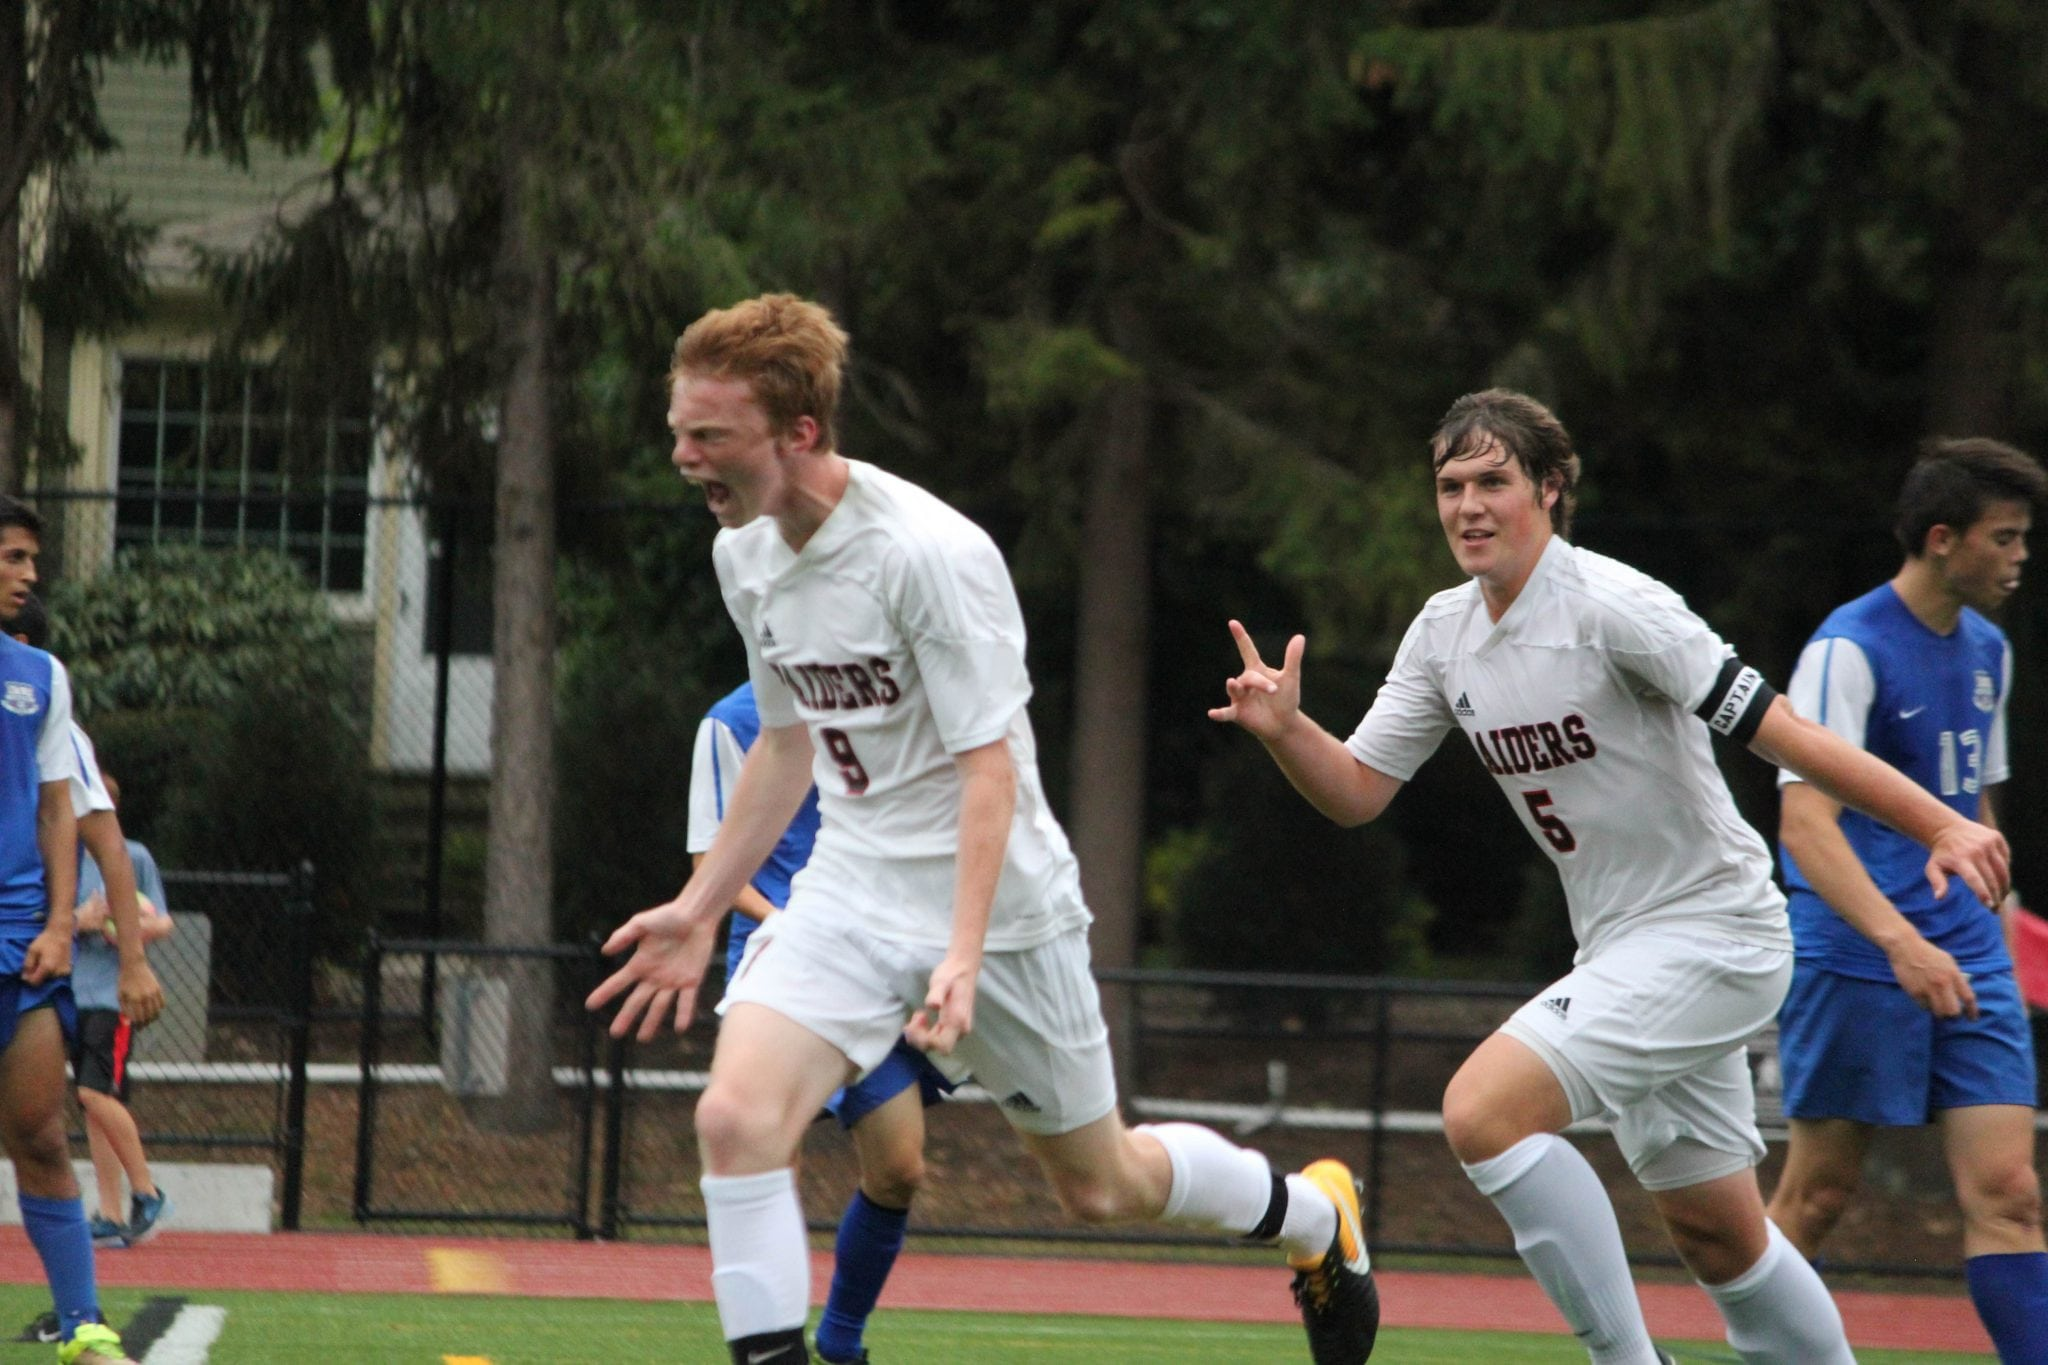 Wellesley High boys soccer